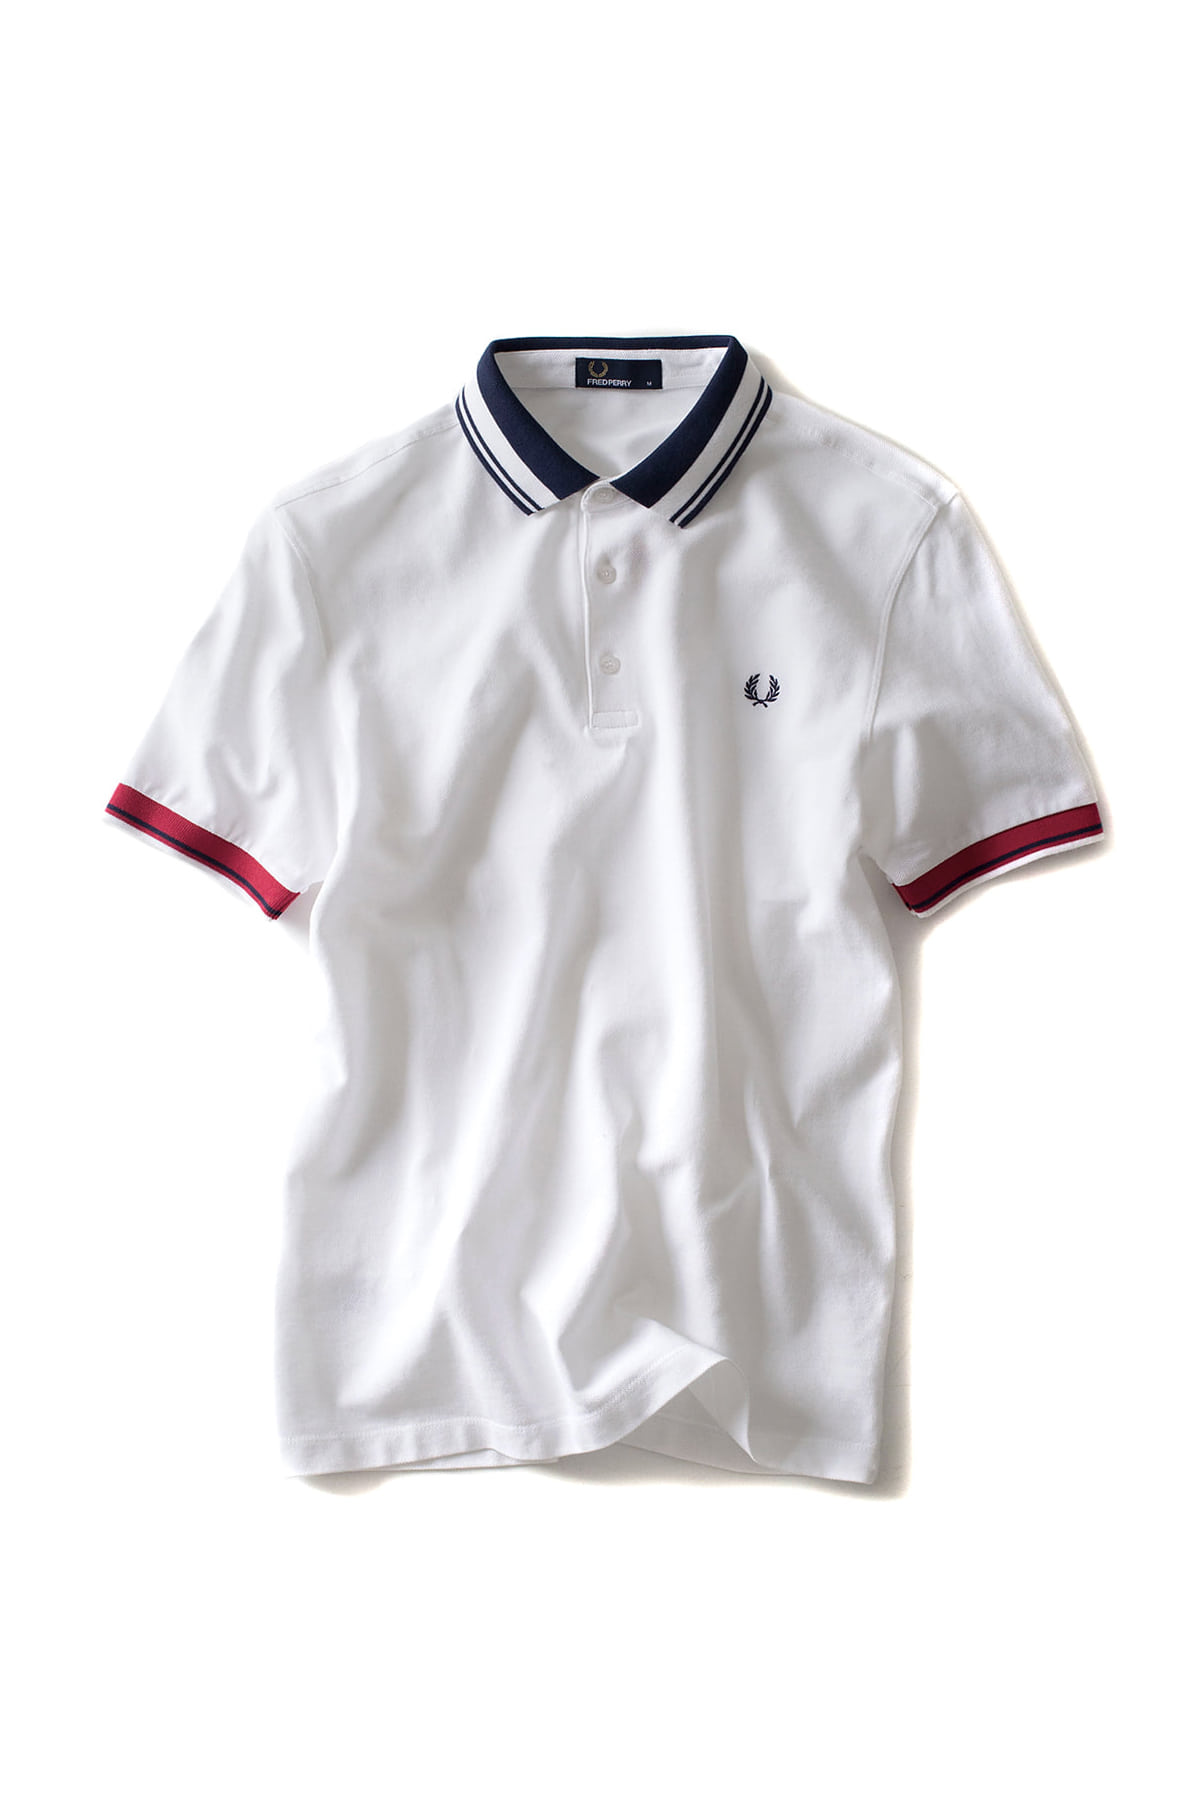 FRED PERRY : Contrast Collar Pique Shirt (White)